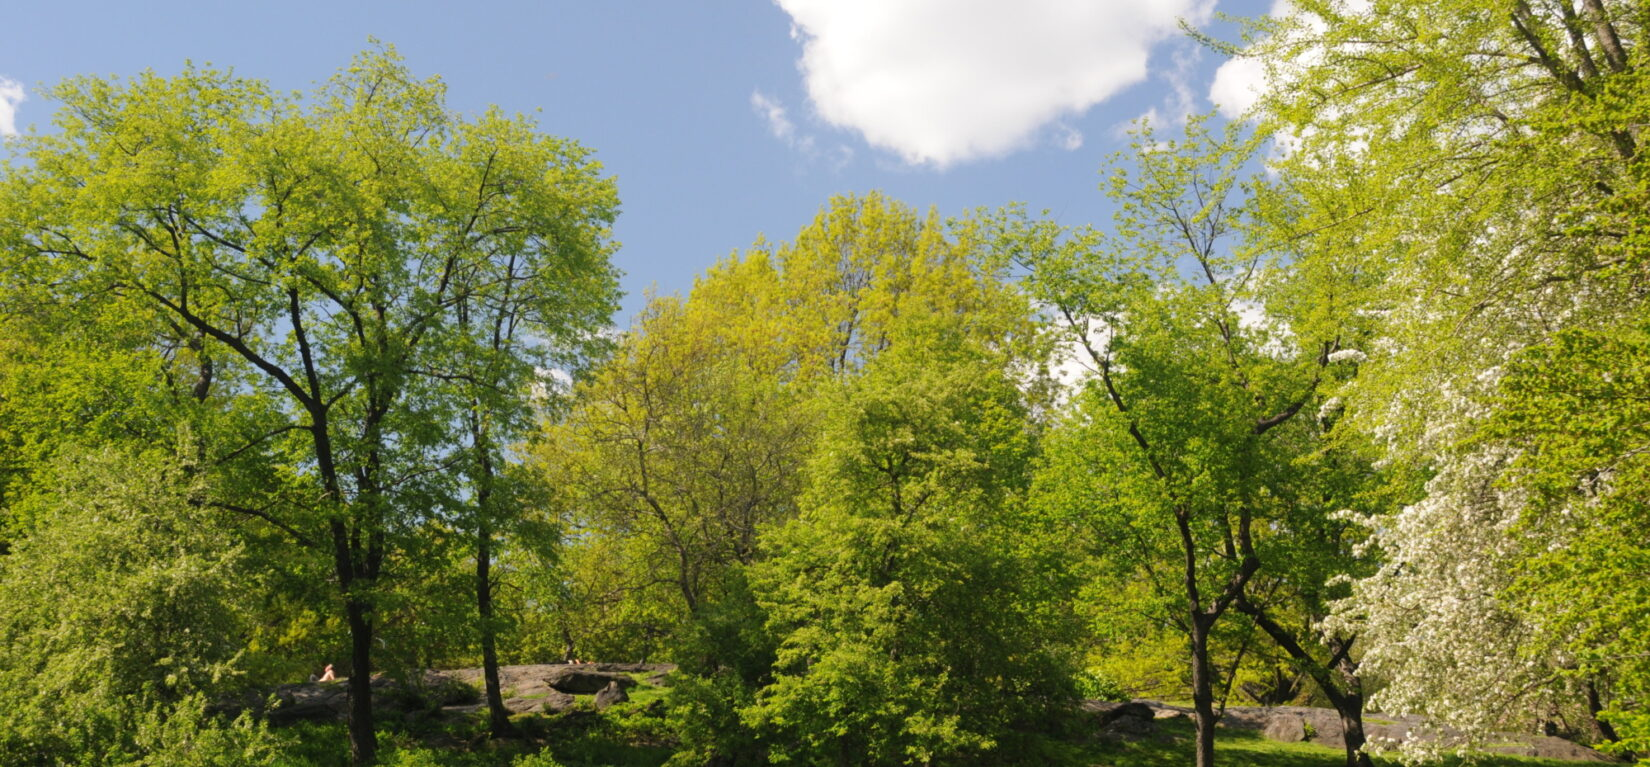 The expanse of the East Meadow is fringed with stands of elms and other trees.